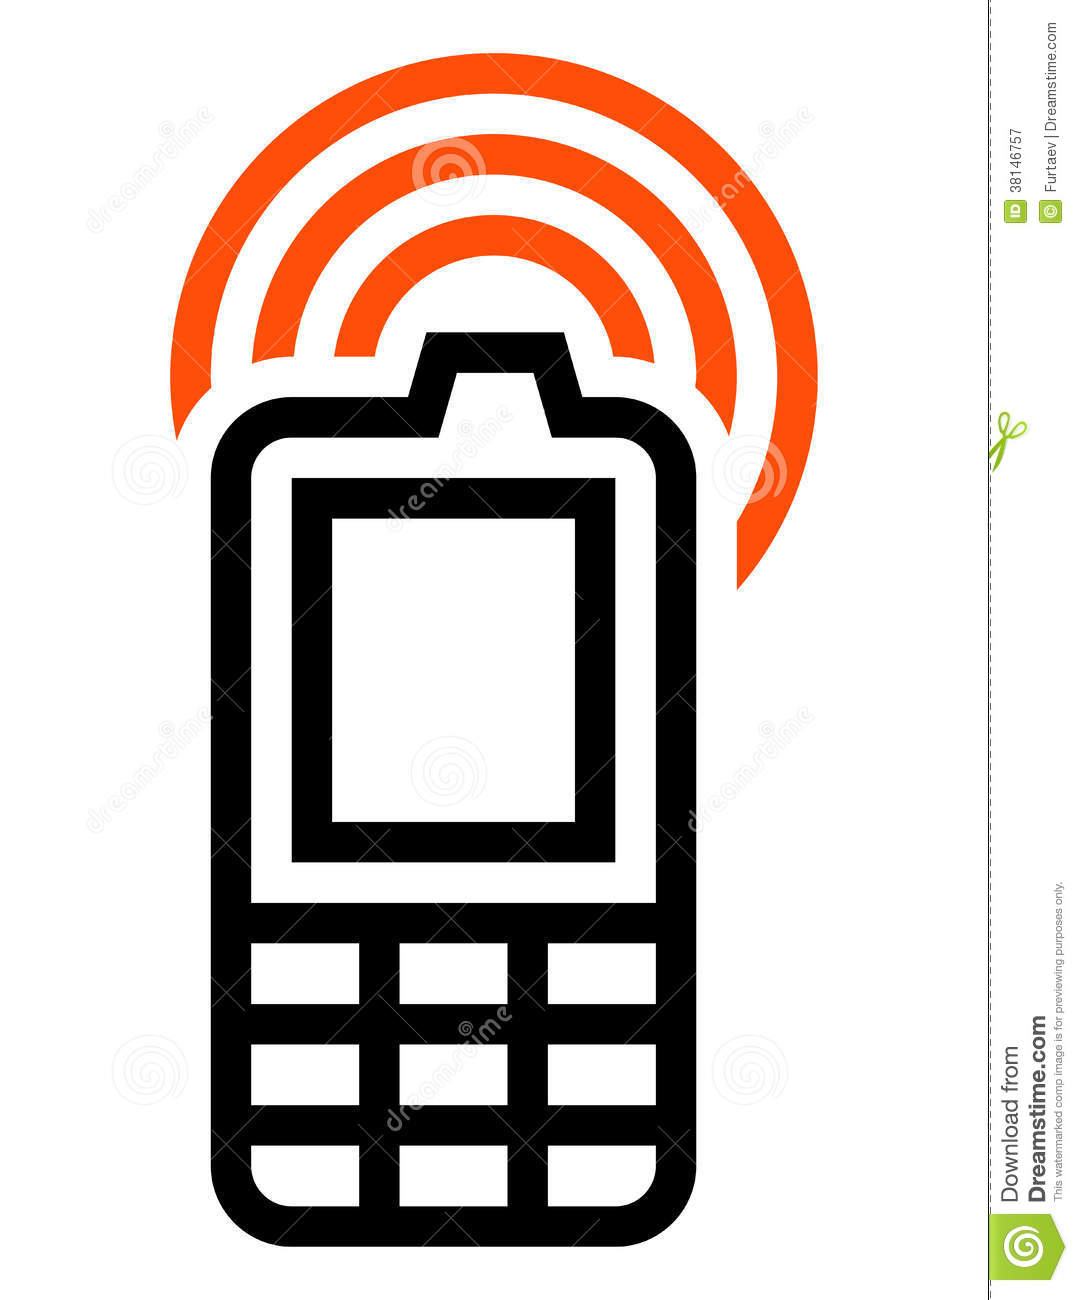 Pics photos cell phone clip art mobile phone icon royalty mobile - Cell Phone Icon Royalty Free Stock Photography Image